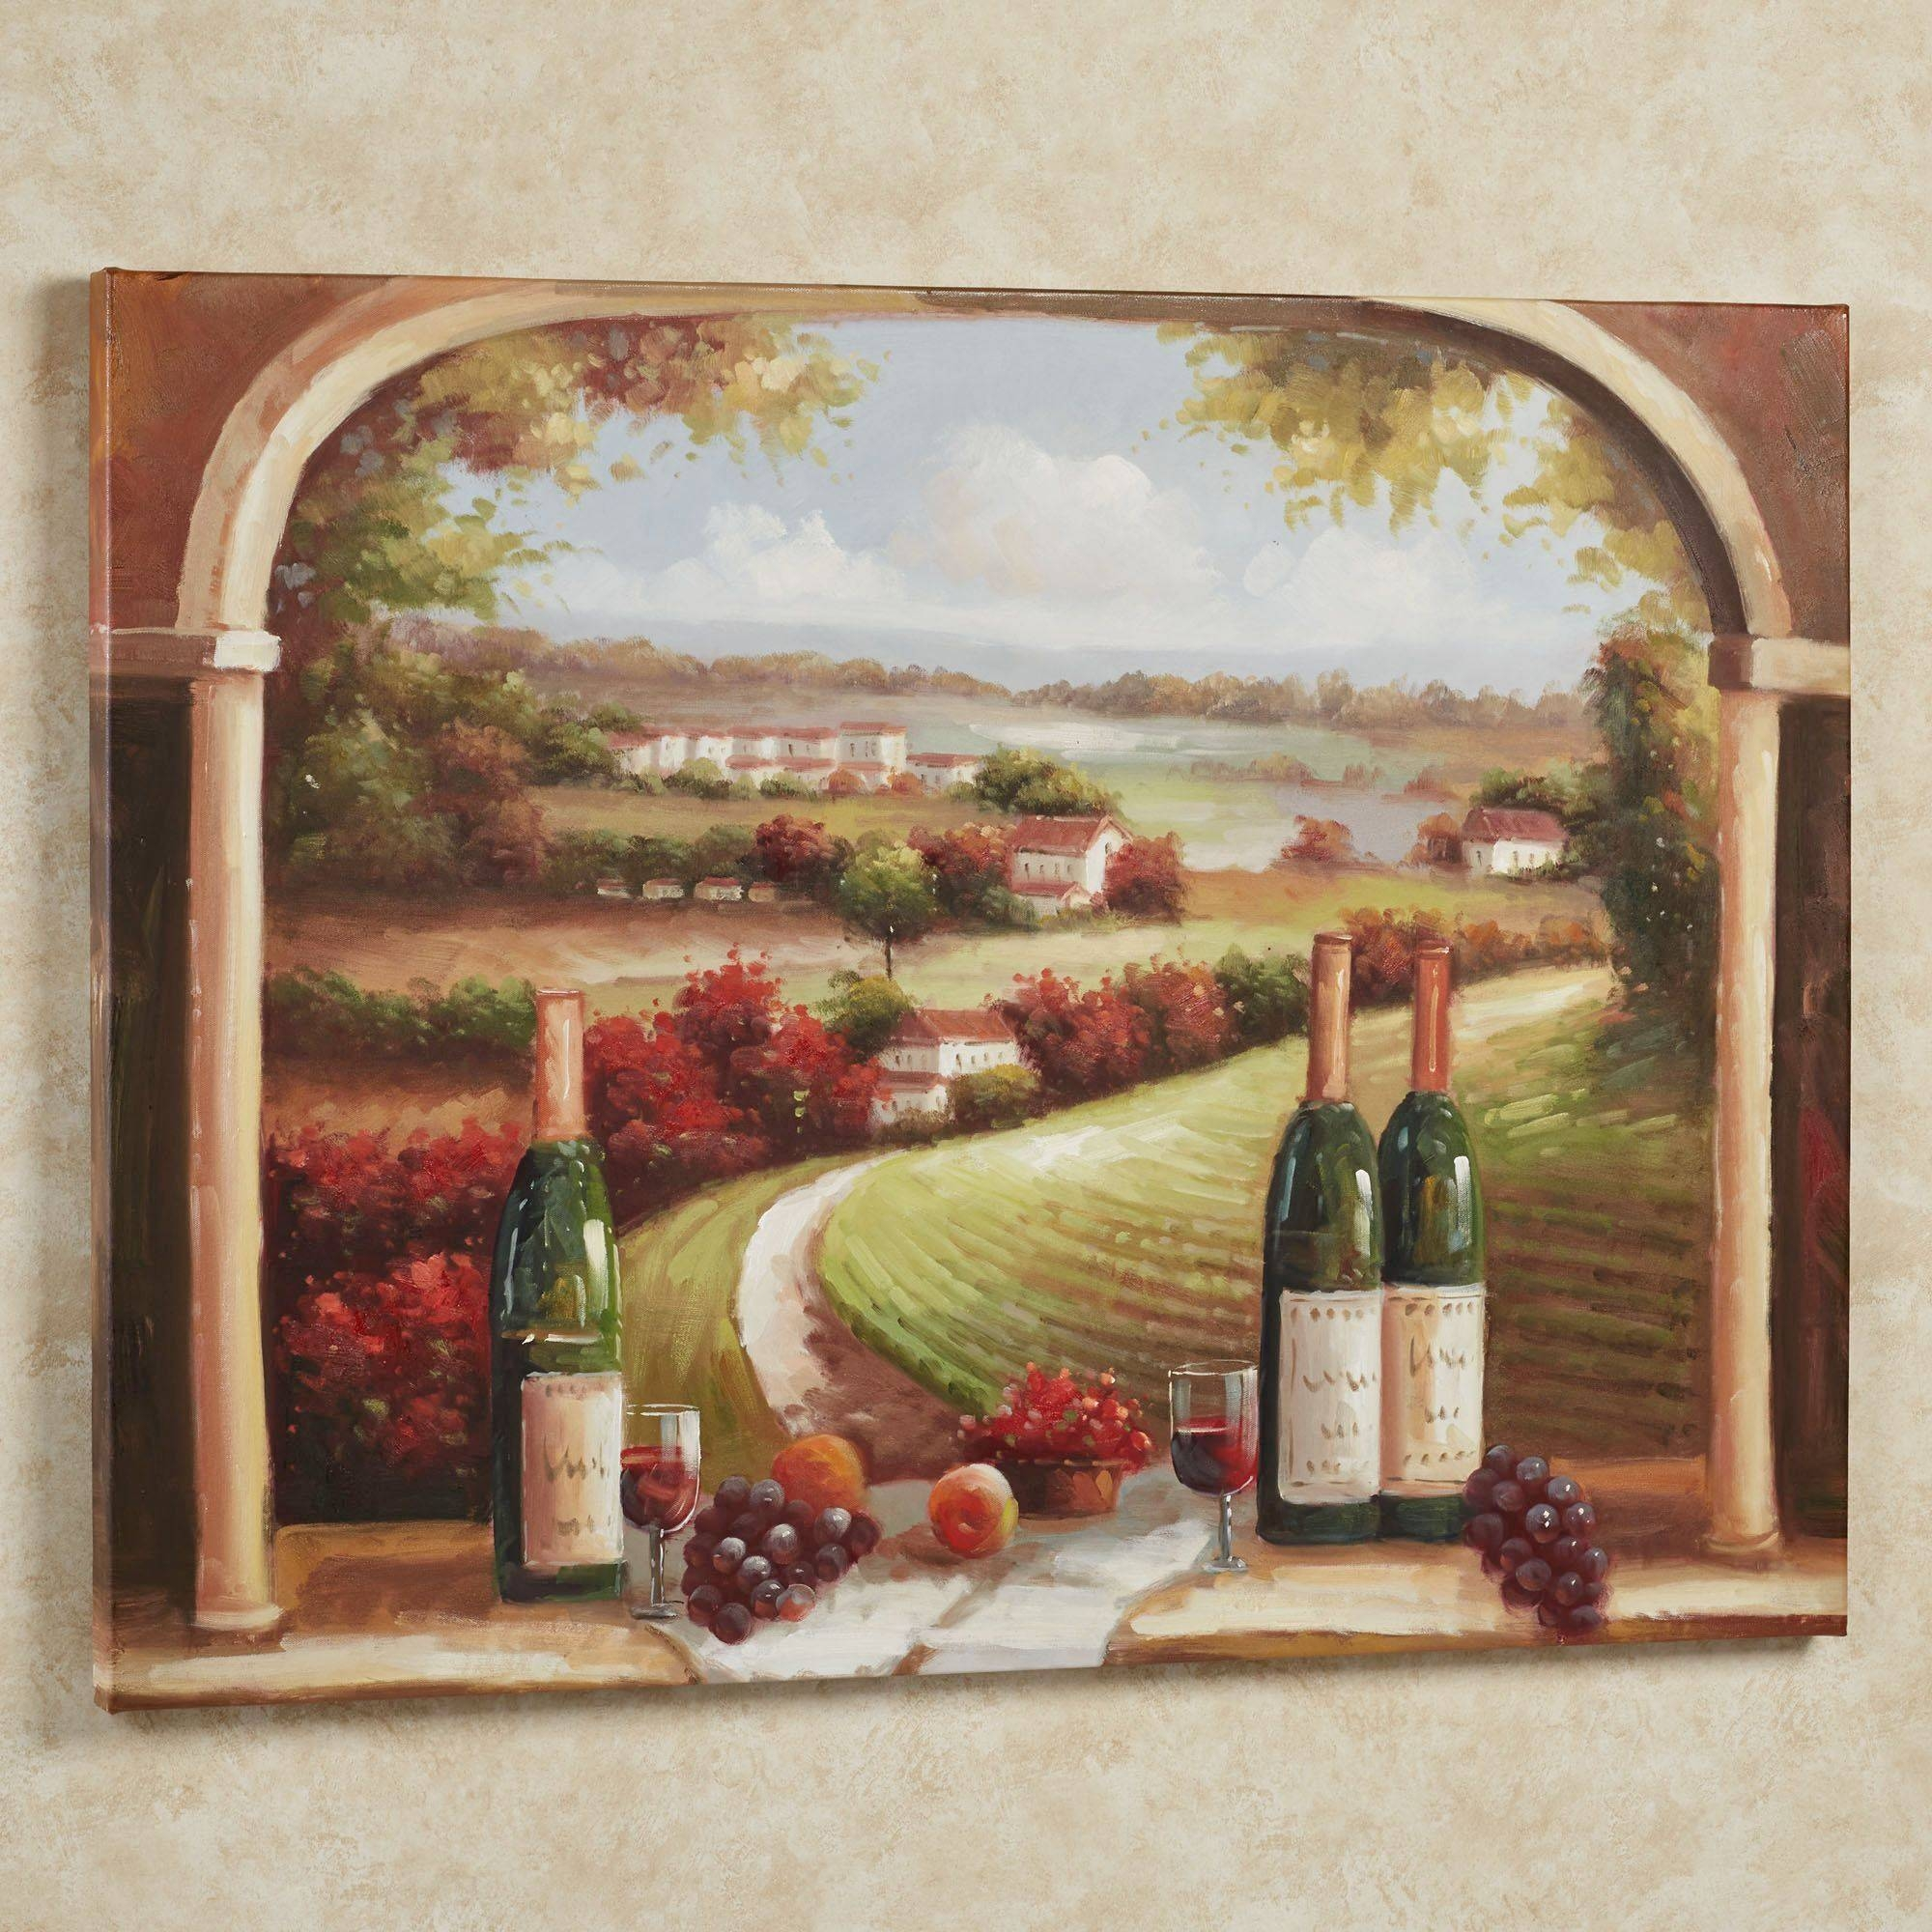 Wall Decor: Wine Wall Art Images. Wine Wall Art For Kitchen (View 18 of 20)